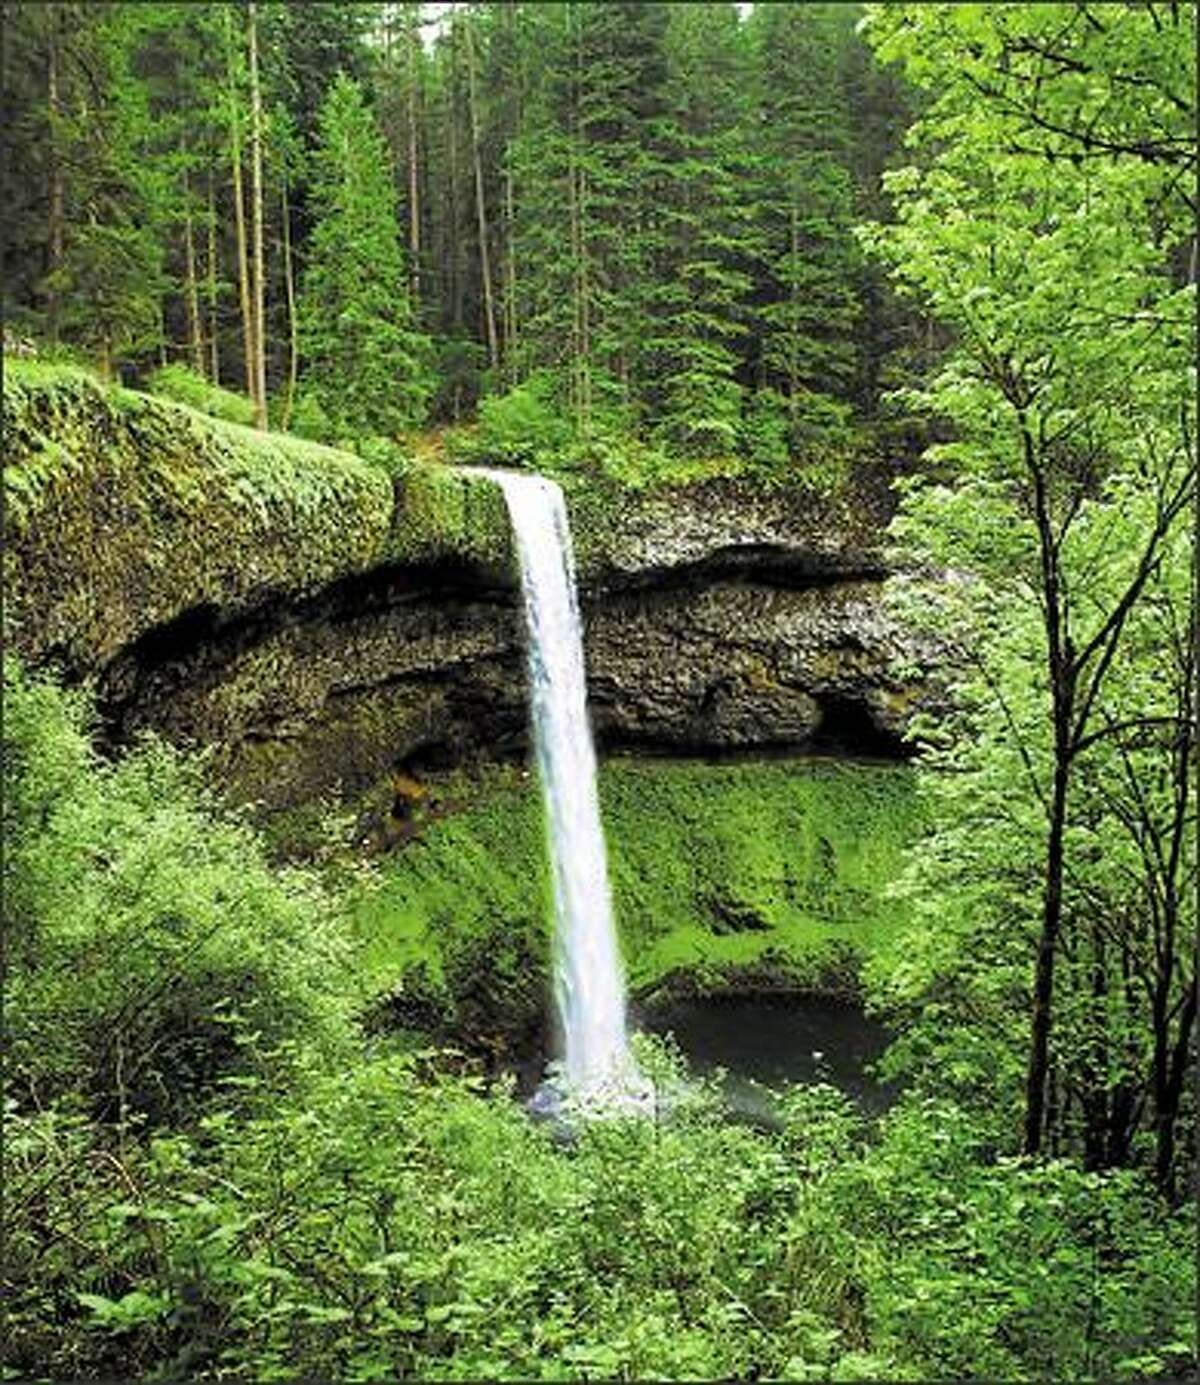 South Falls at Silver Lake State Park can be seen from several viewpoints. You can hike under the 177-foot-high falls via a paved trail.